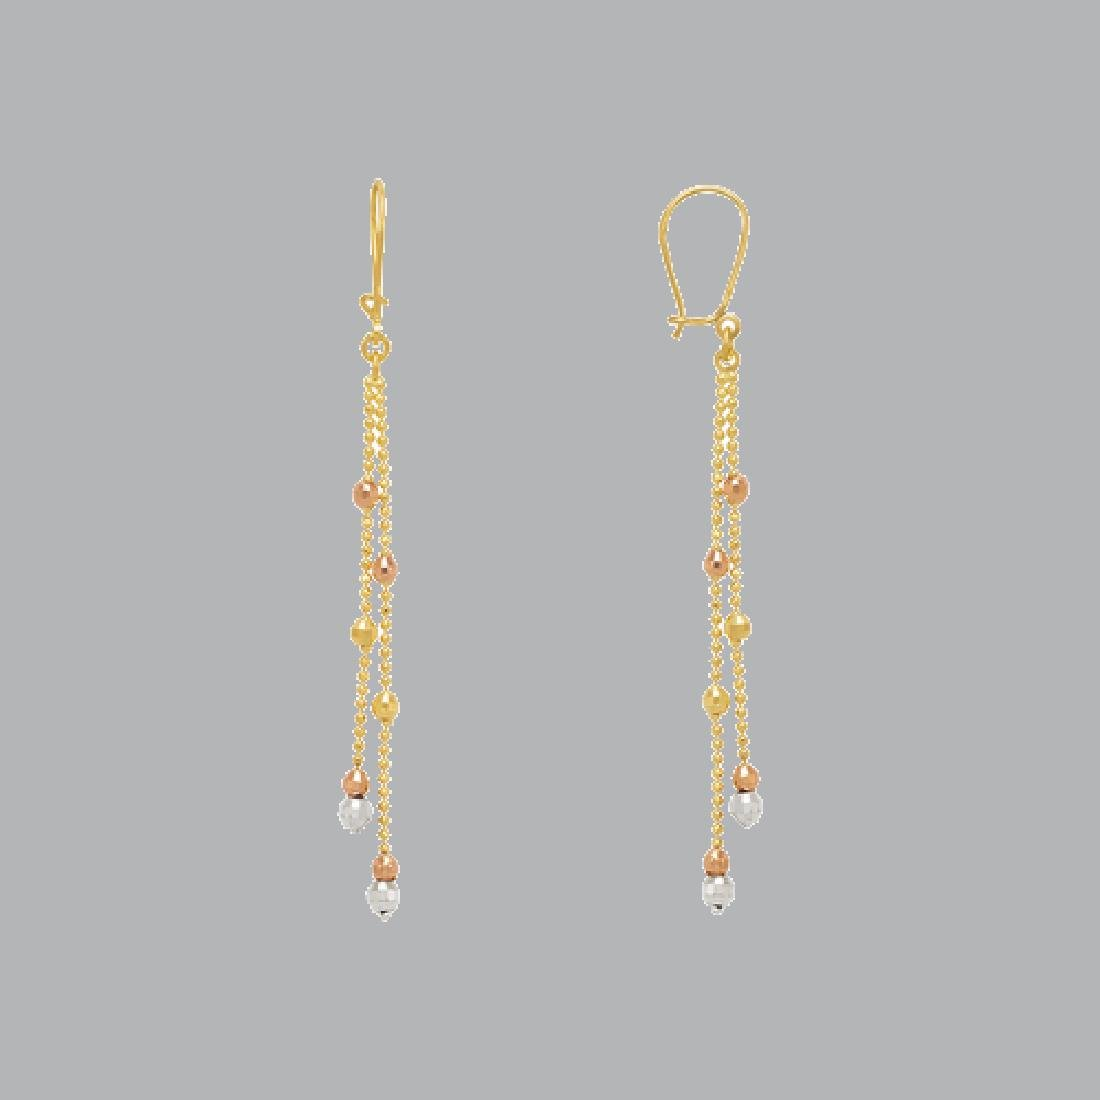 14K TRI COLOR GOLD DROP DANGLE MALAYSIAN EARRINGS - 2